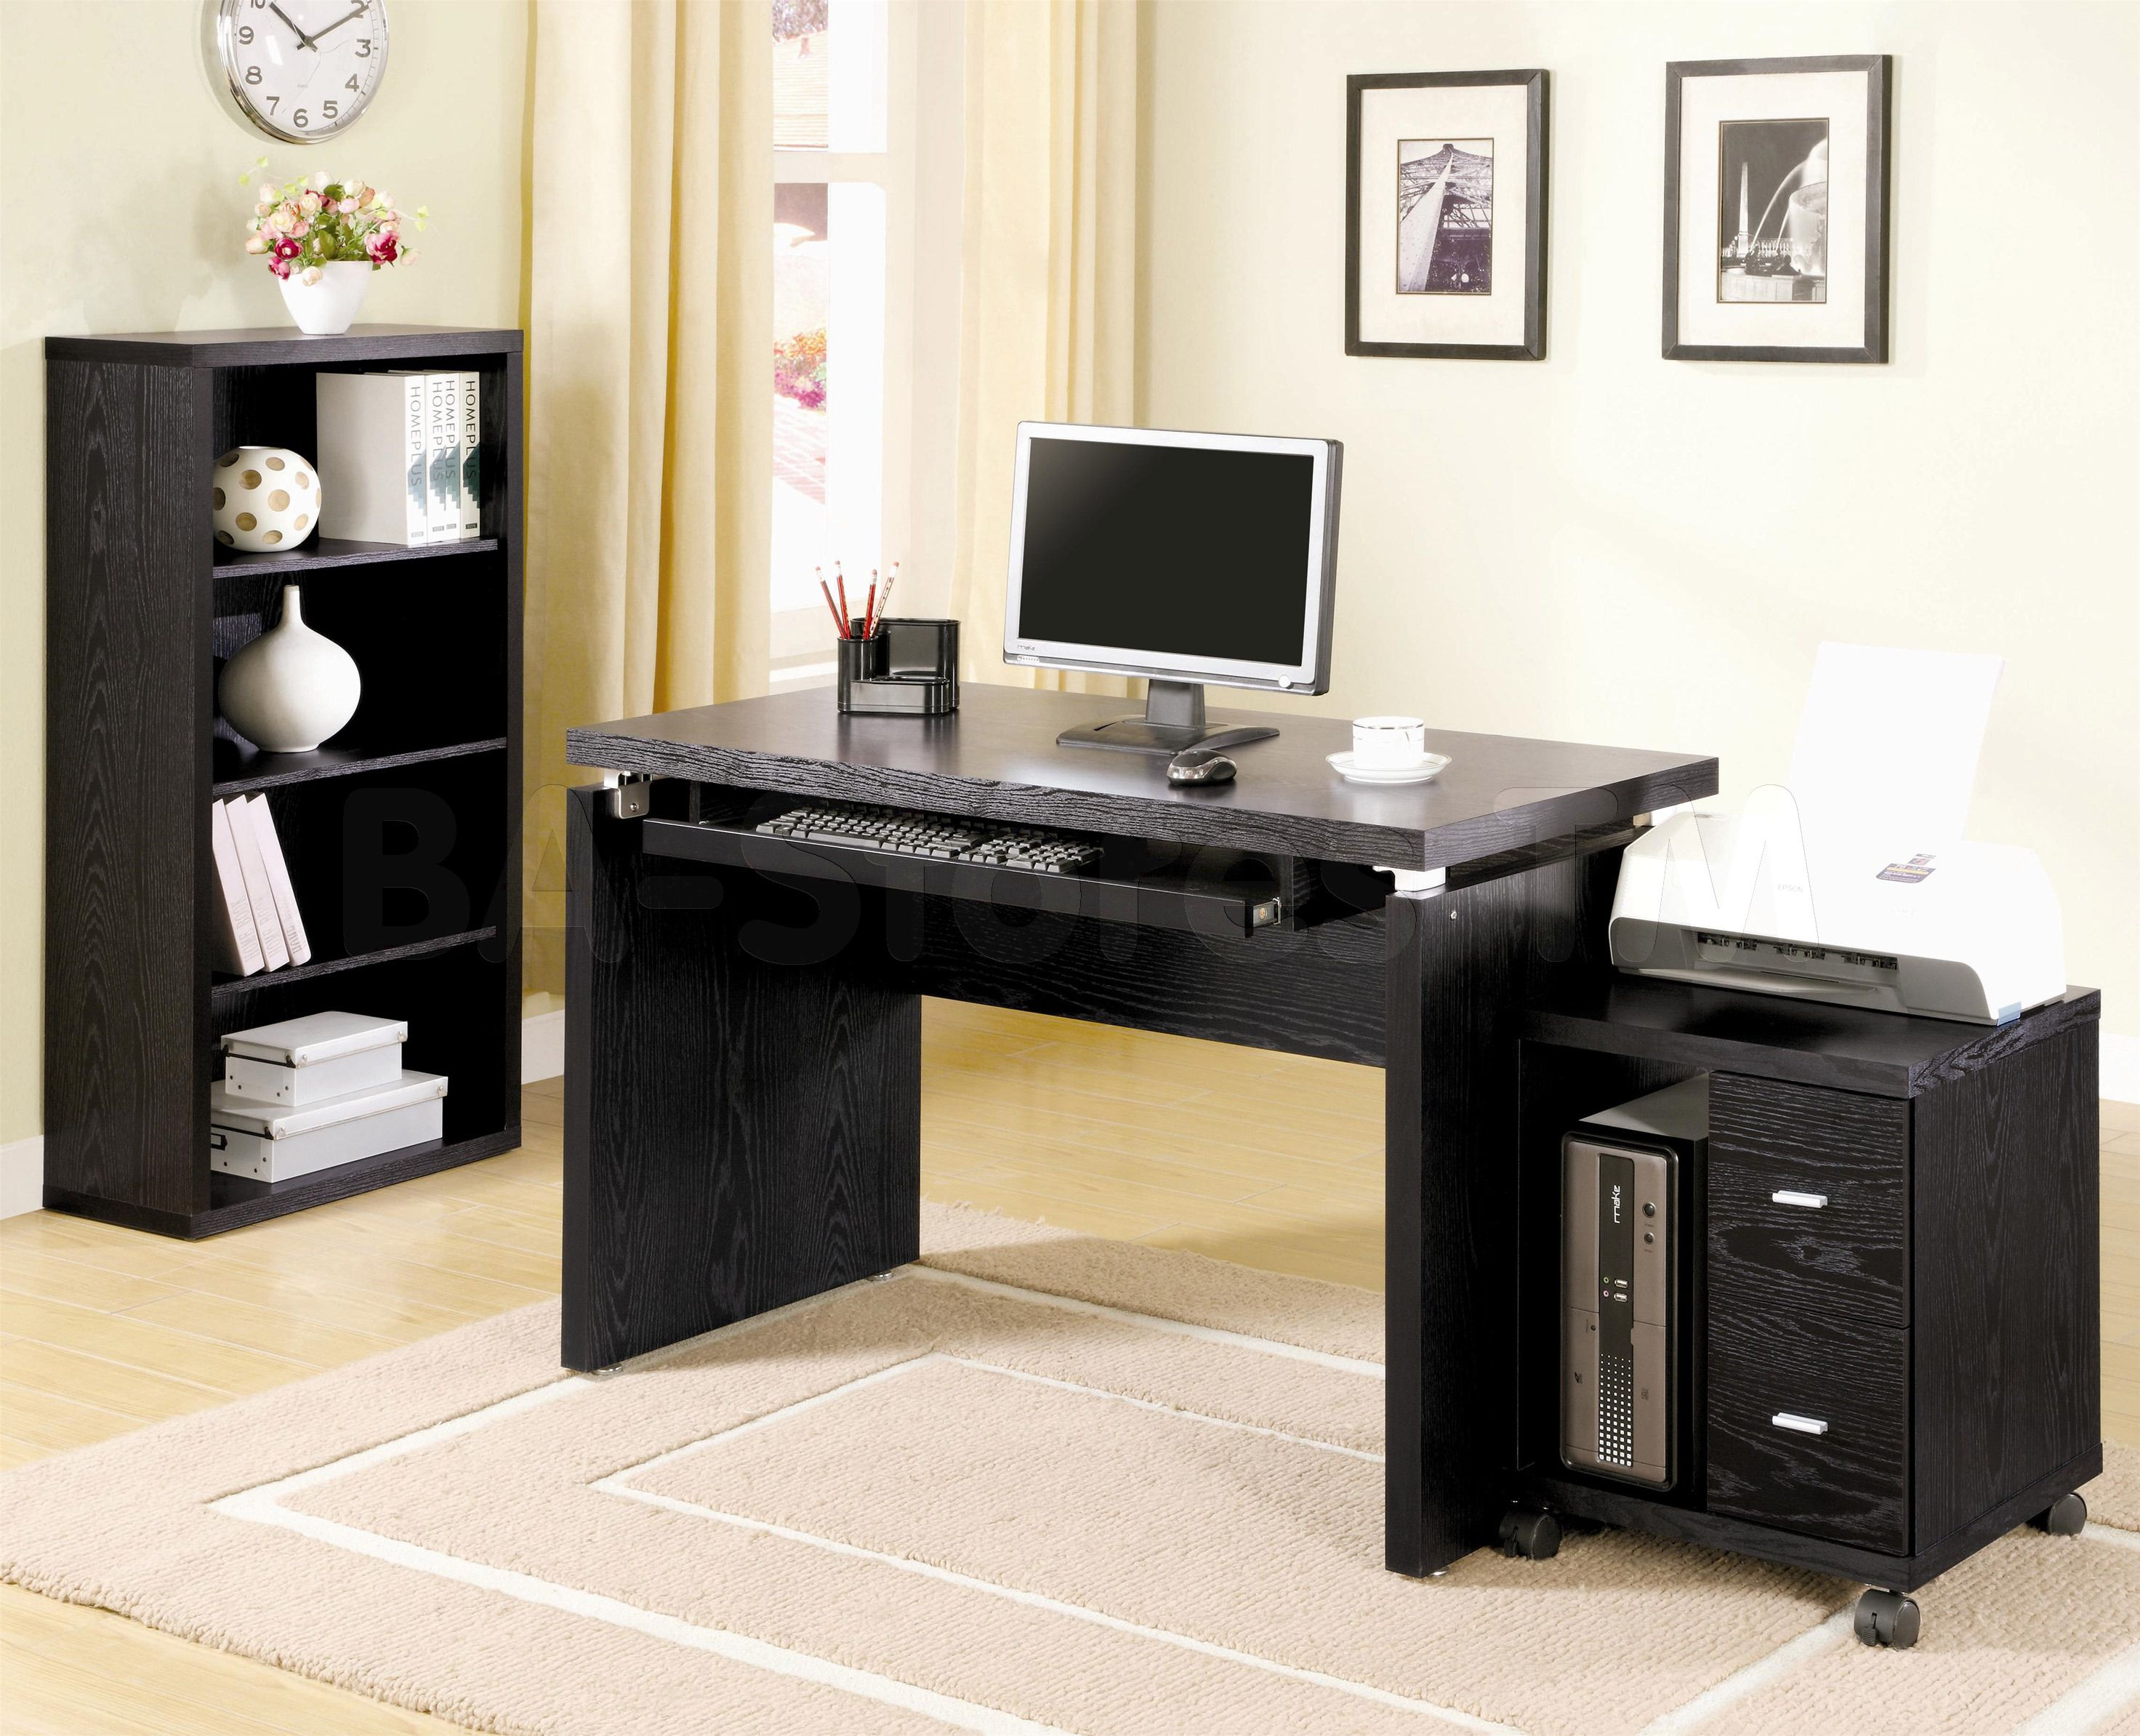 best images about cheap home office on pinterest home office home desk design - Office Desk Design Ideas